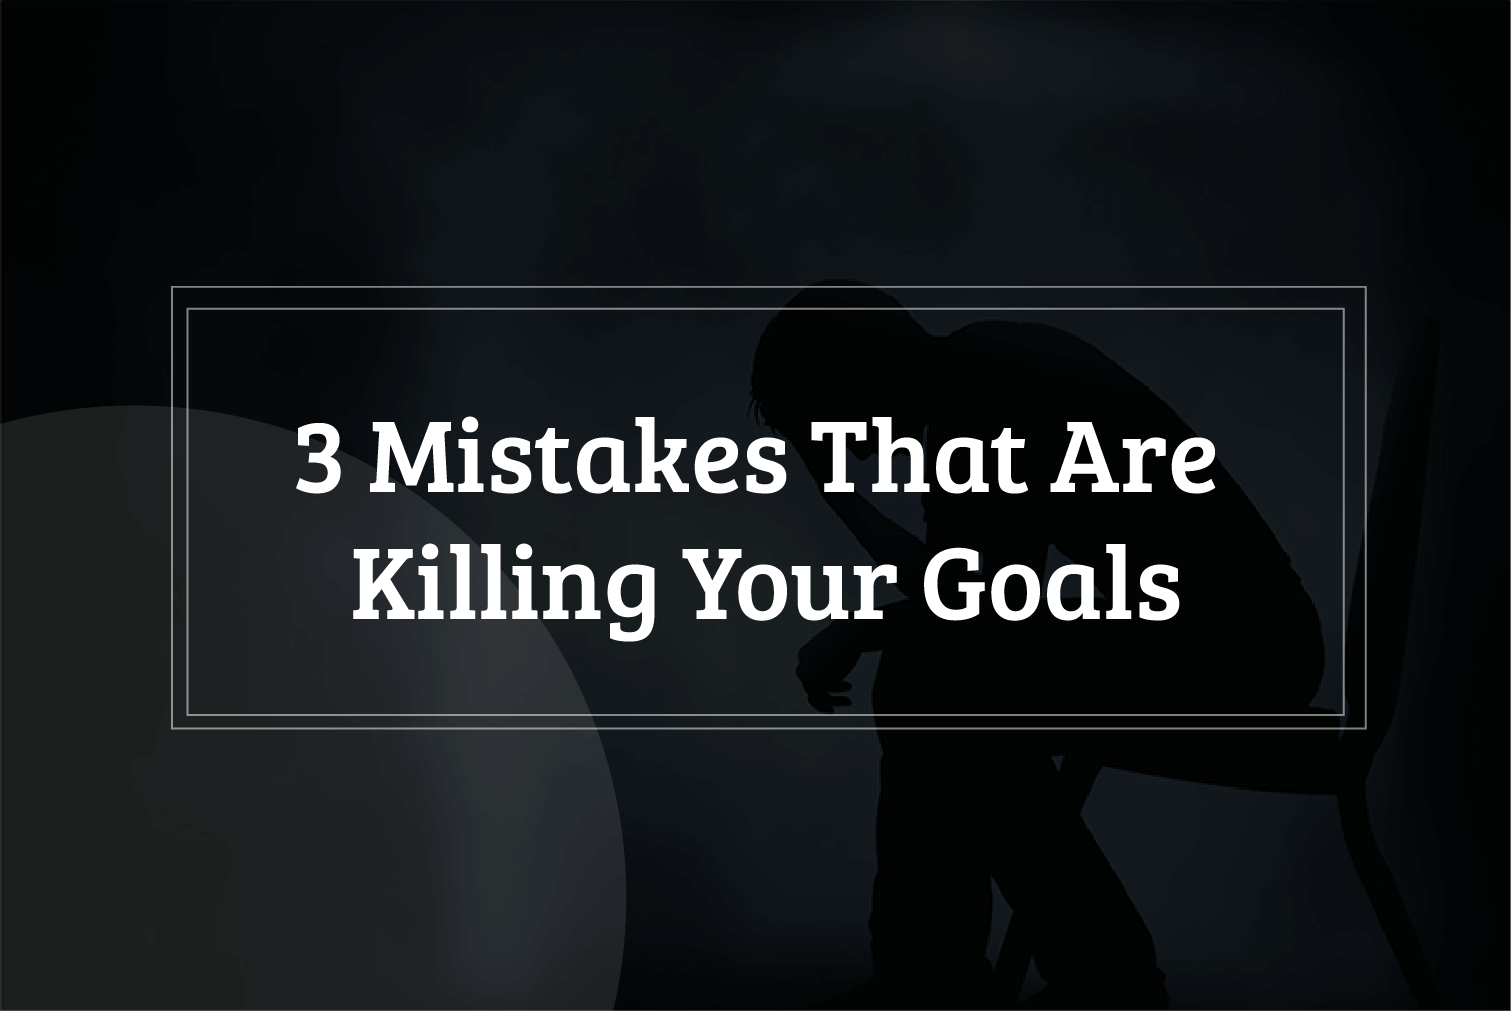 Goal killing Mistakes in Life